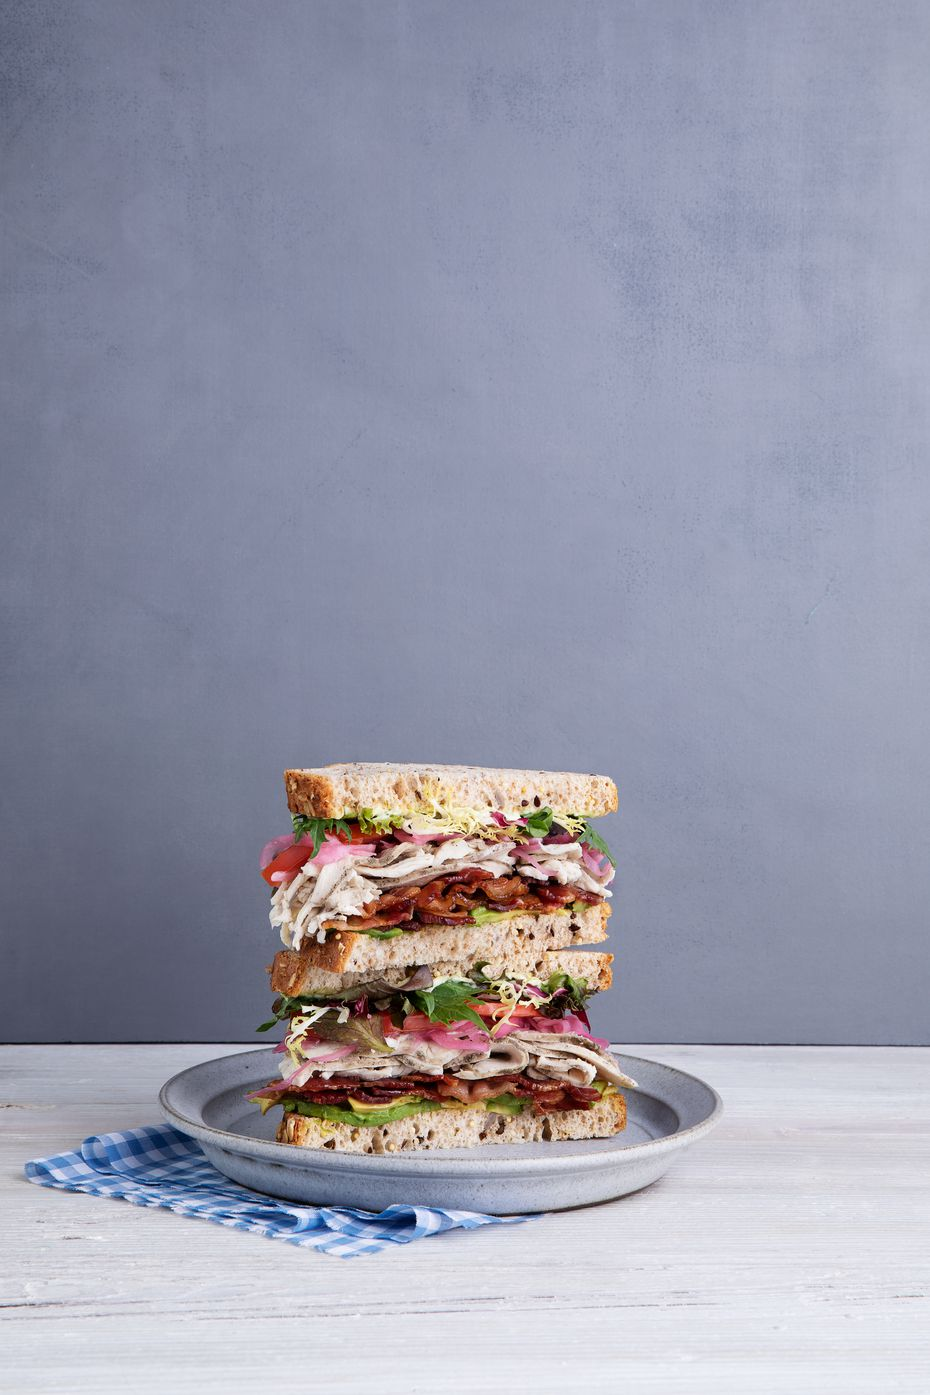 Mendocino Farms' Farm Club is one of more than a dozen sandwiches on the menu.